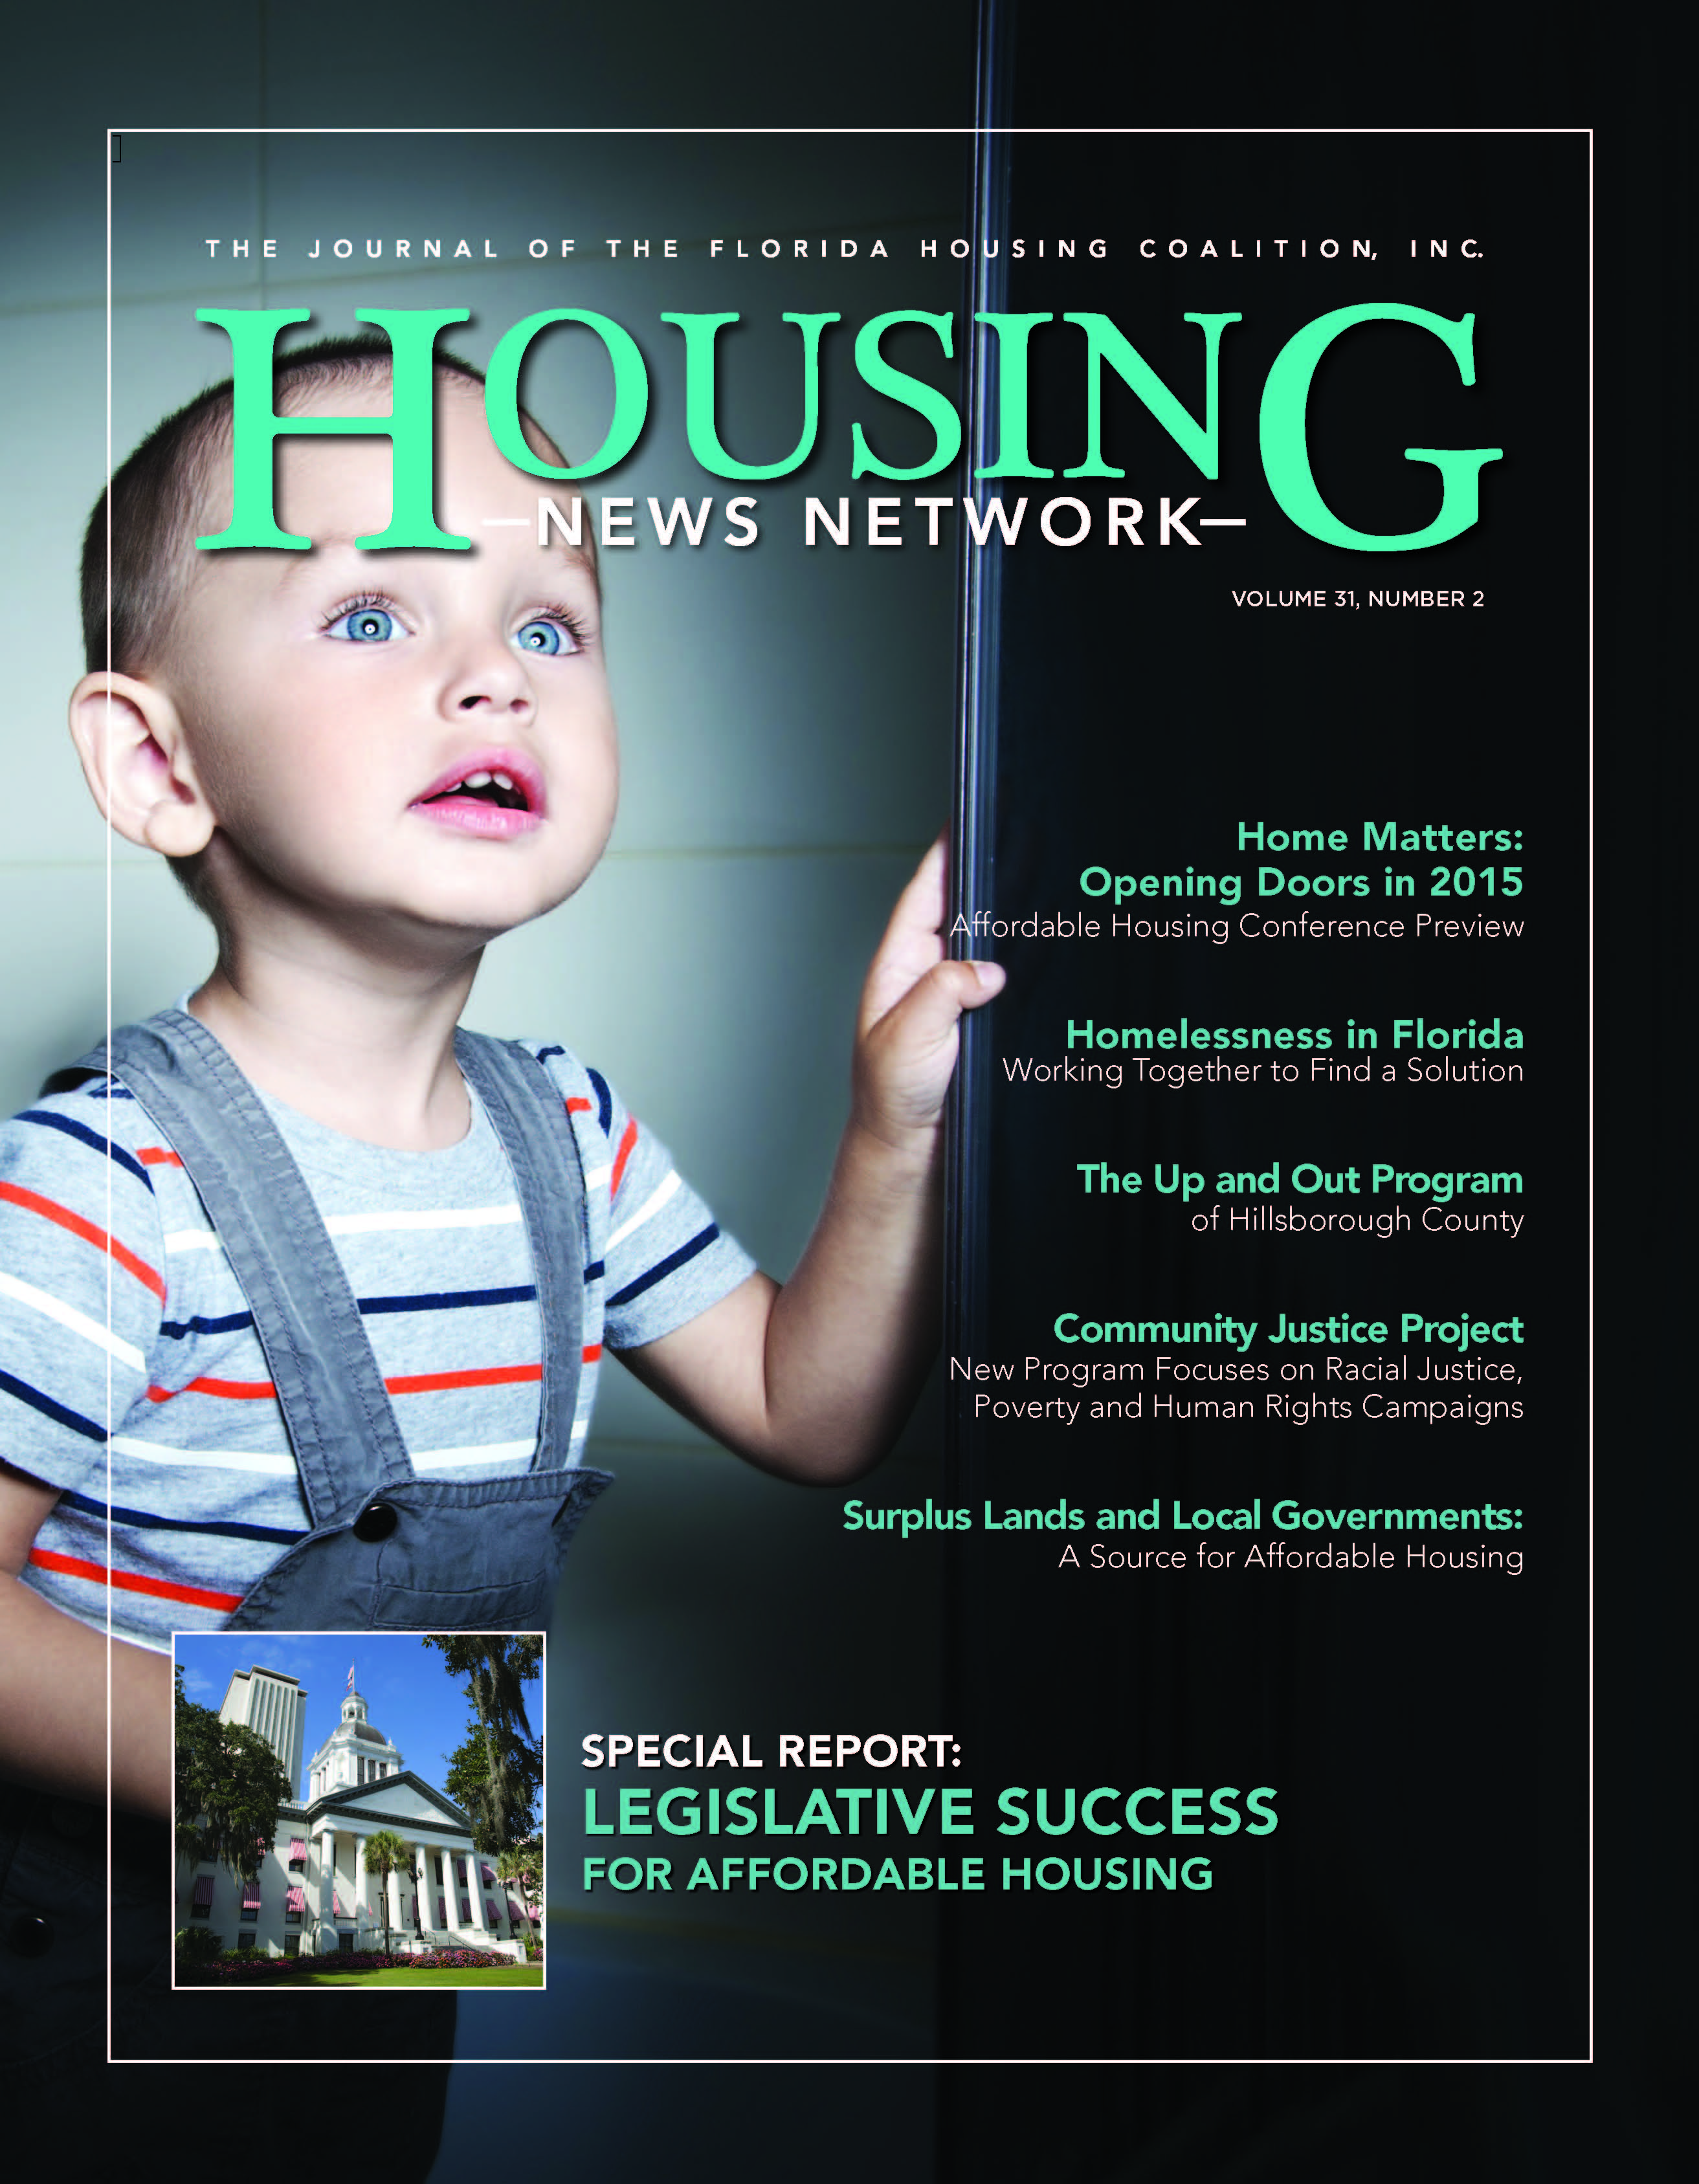 Housing News Network, Vol. 31, No. 2